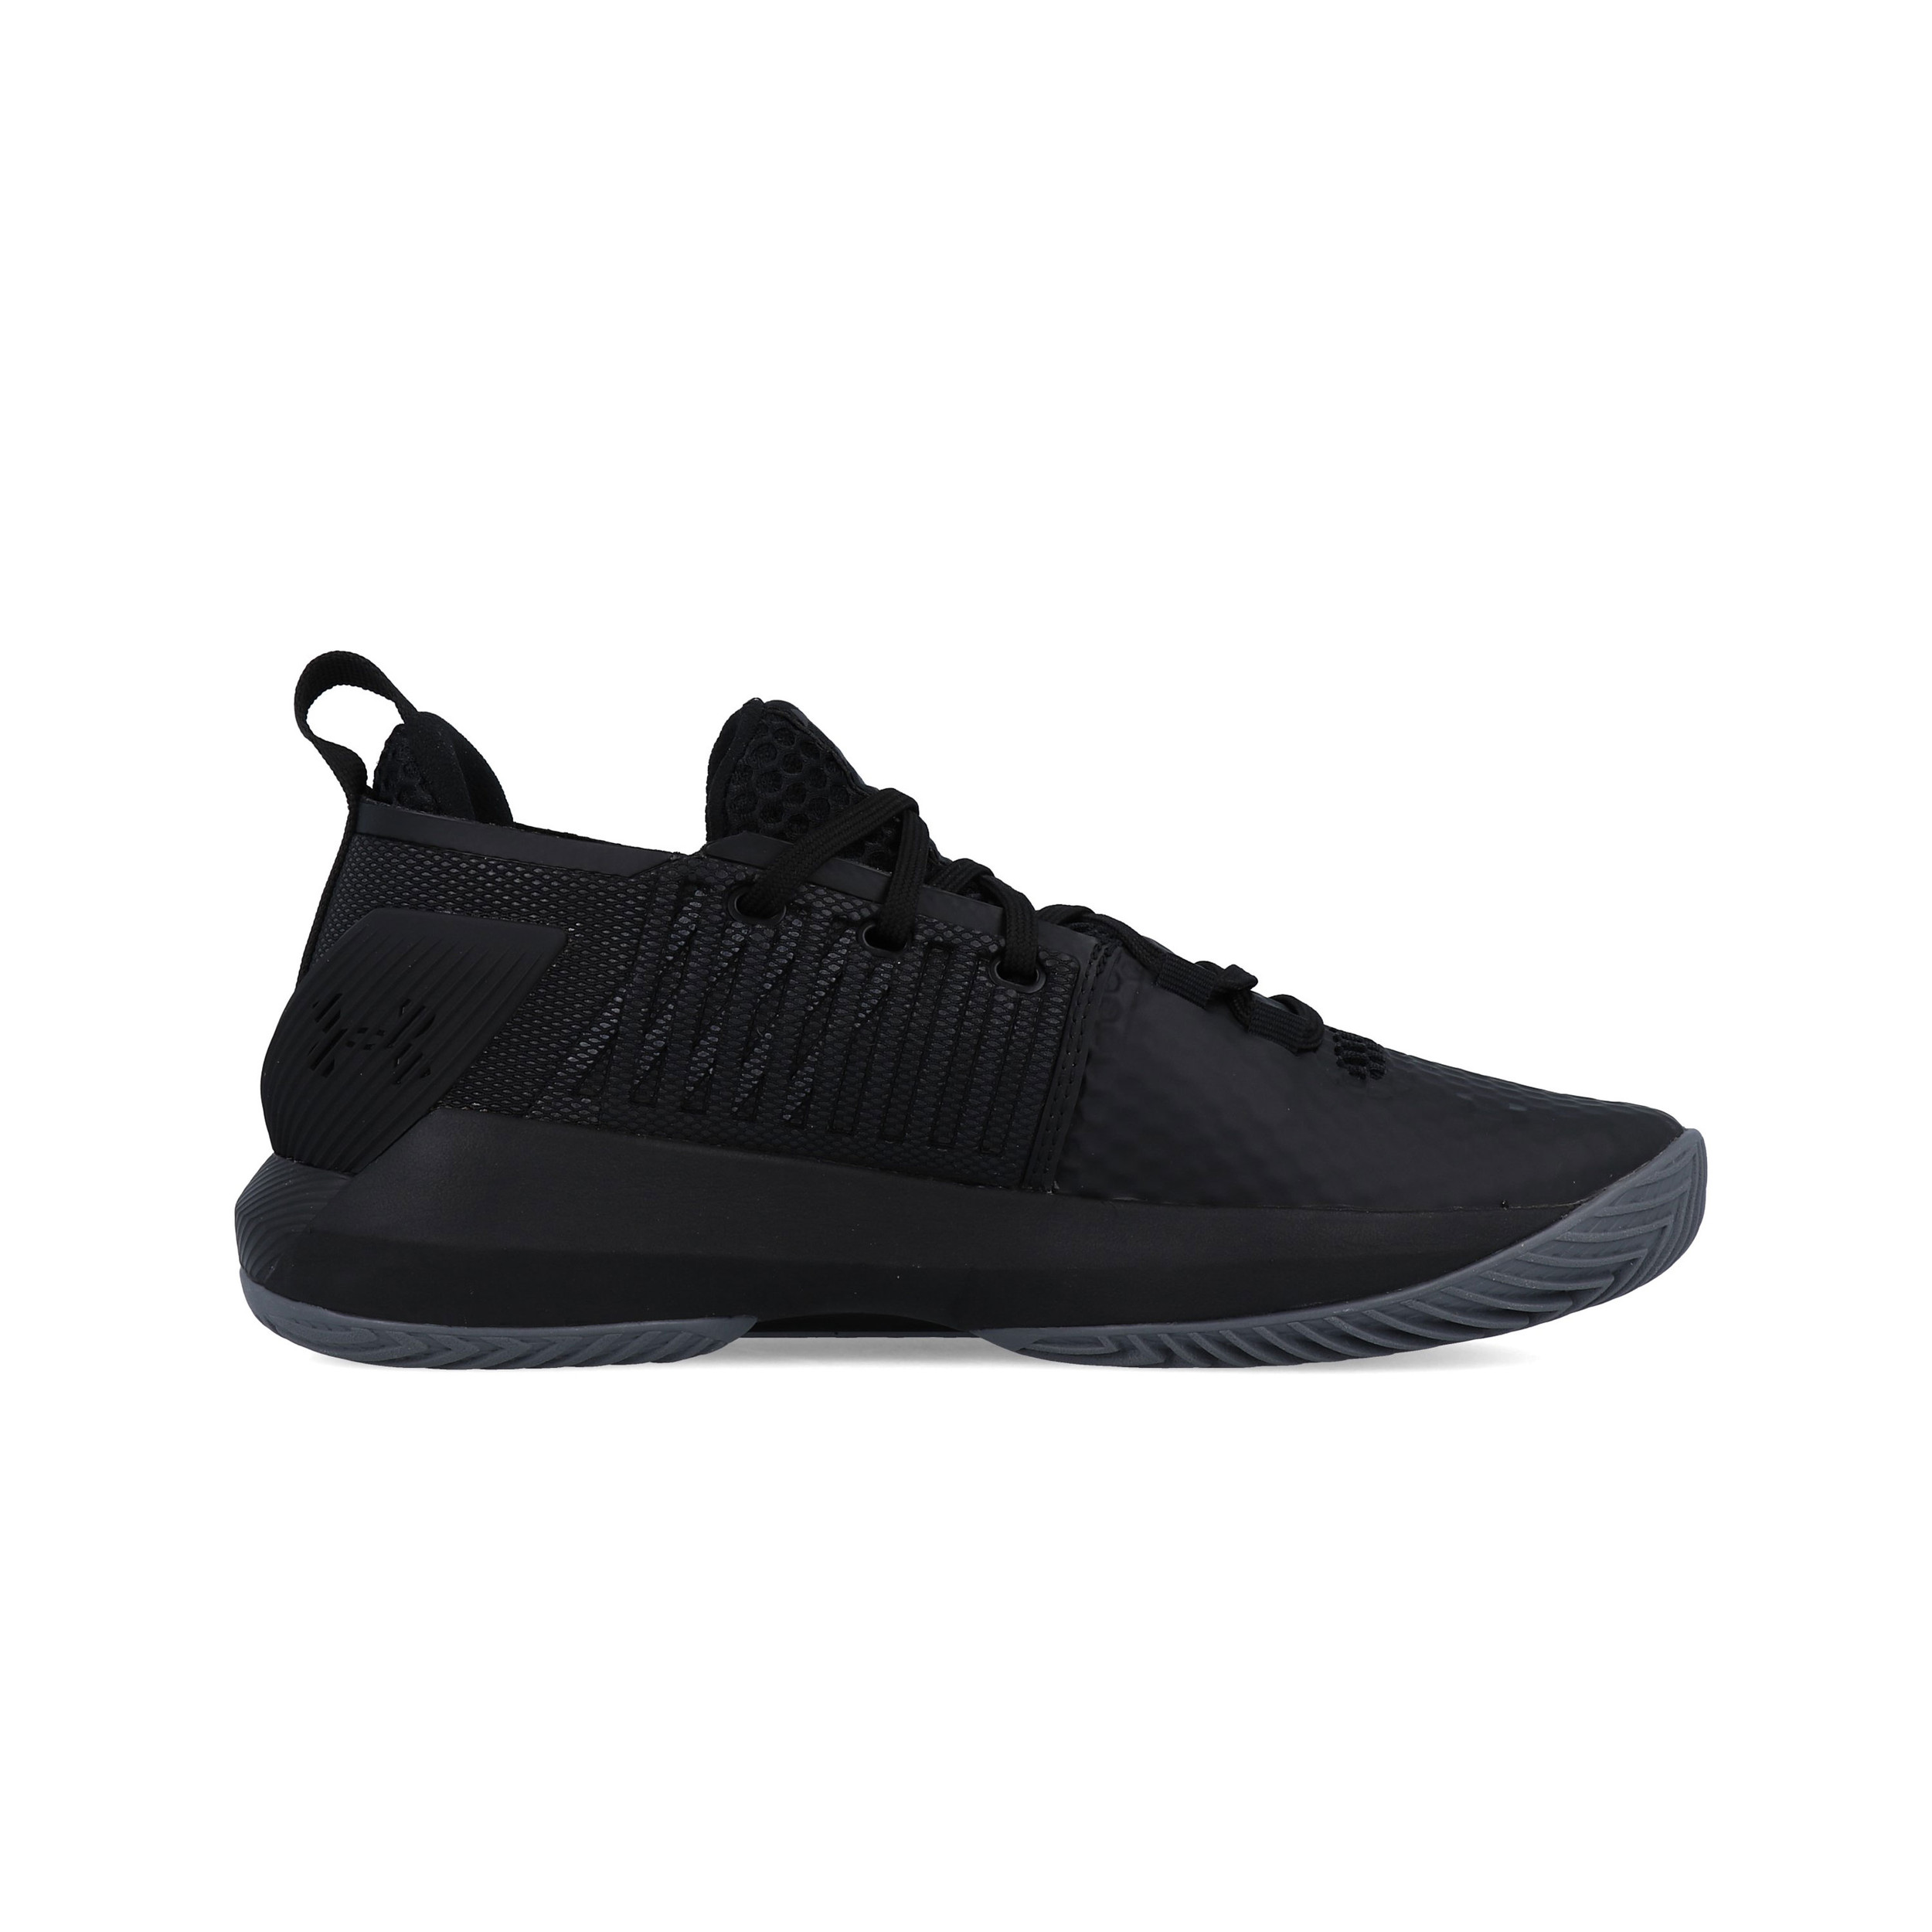 3f9bc7ad803 Under Armour Hombre Drive 4 Baloncesto Zapatos Negro Deporte Transpirable  Ligero